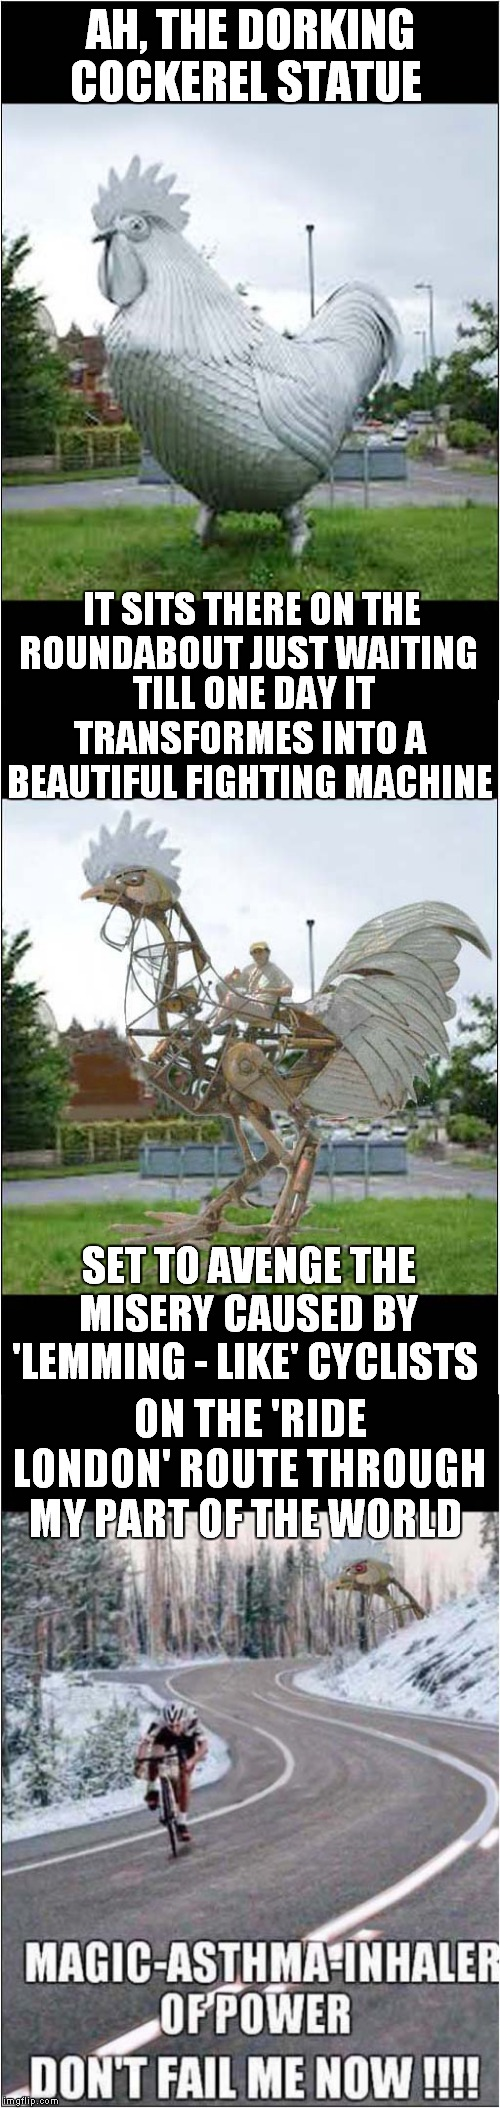 Dorking is a town about 20 miles south of London | AH, THE DORKING COCKEREL STATUE ON THE 'RIDE LONDON' ROUTE THROUGH MY PART OF THE WORLD IT SITS THERE ON THE ROUNDABOUT JUST WAITING TILL ON | image tagged in fun,dorking cockerel,bloody cyclists | made w/ Imgflip meme maker